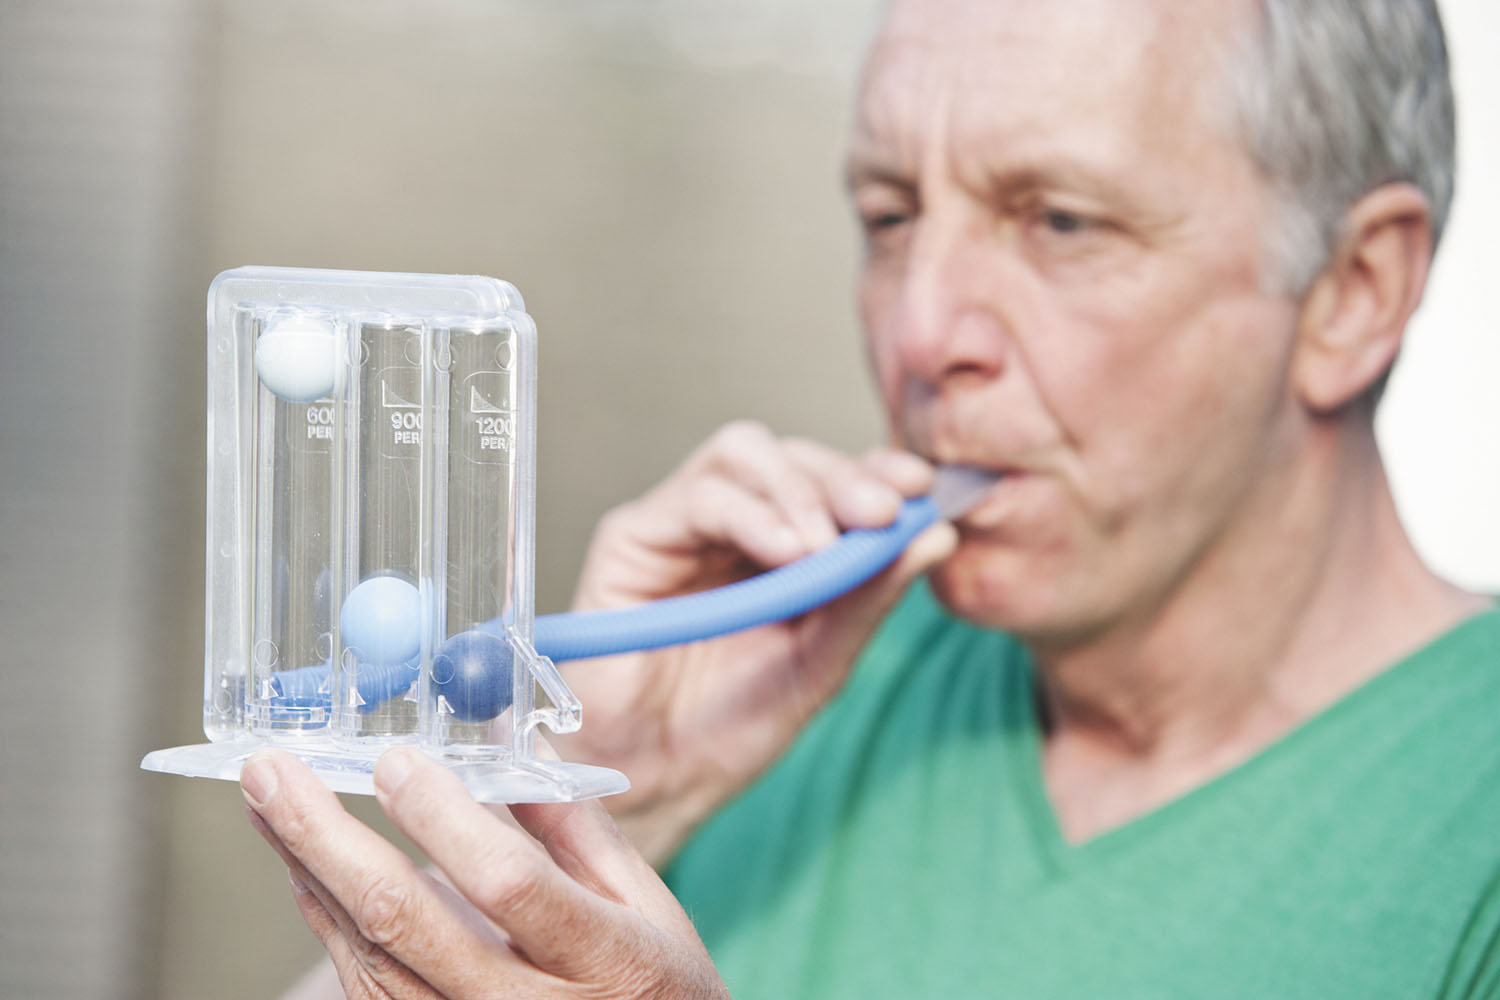 Shortness of breath: A common symptom with many possible ...